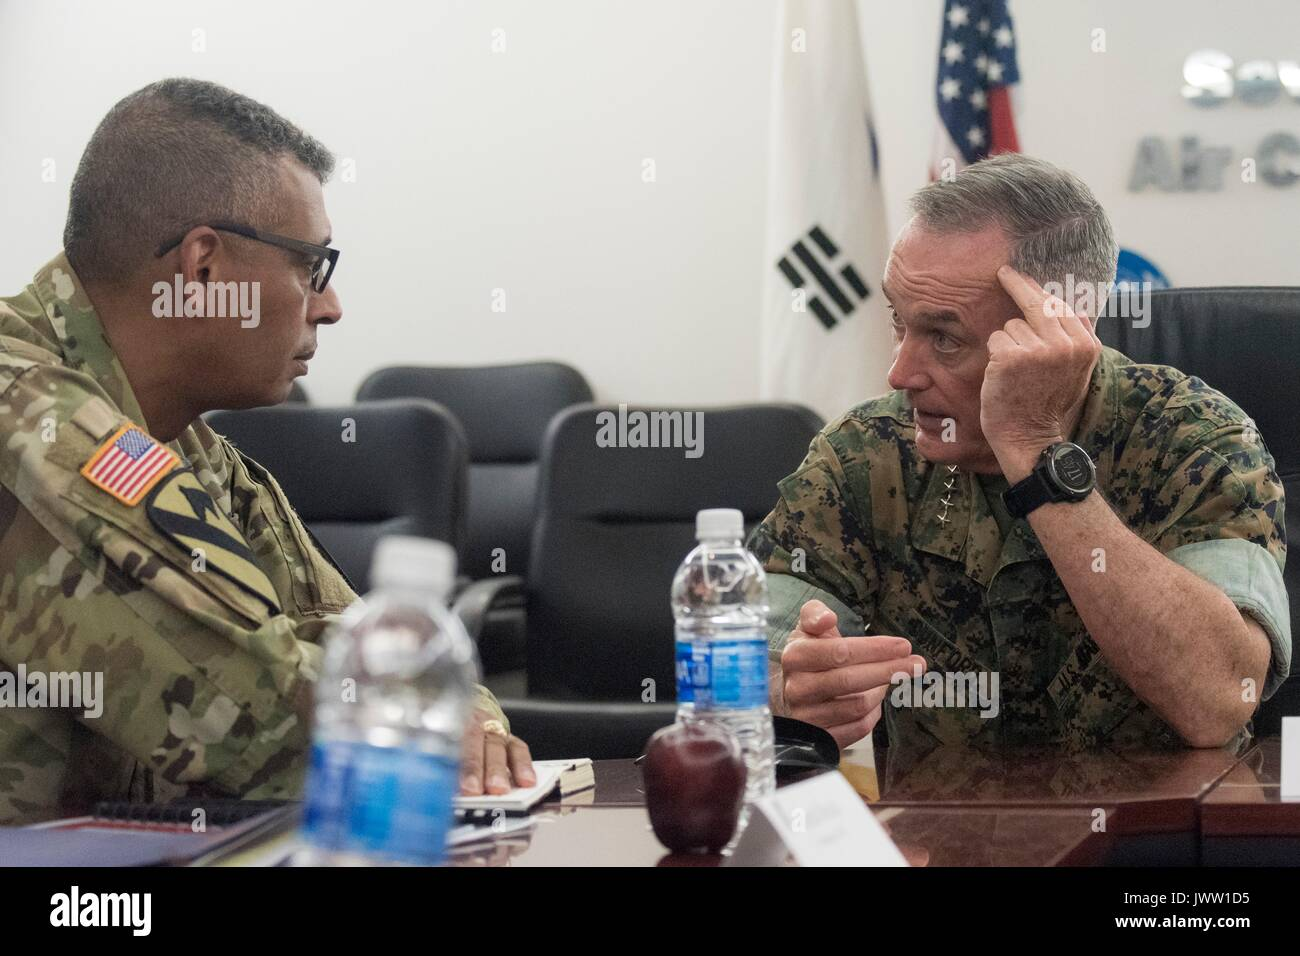 U.S. Chairman of the Joint Chiefs Gen. Joseph Dunford, right, meets with Army Gen. Vincent Brooks, commander, U.S. Forces Korea, at Osan Air Base August 13, 2017 in Pyeongtaek, Gyeonggi-do, South Korea. Dunford is meeting military leaders in the Asia-Pacific region as tensions rise with North Korea over nuclear and ballistic missiles tests. - Stock Image